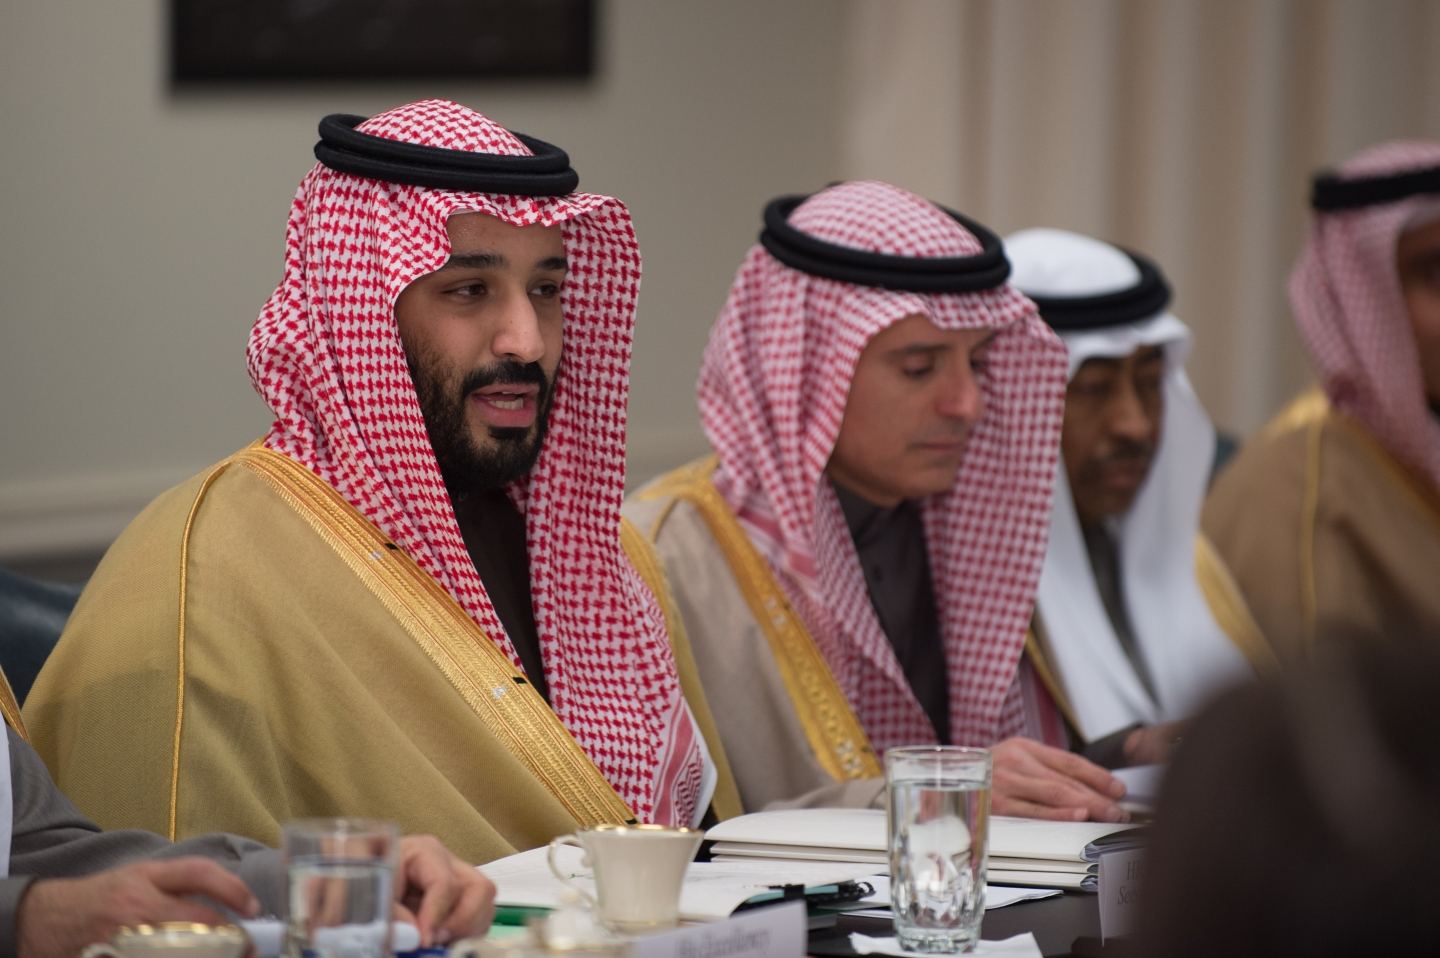 Crown Price of Saudi Arabia Mohammad bin Salman Al Saud speaks to Defense Secretary Jim Mattis during bi-lateral meeting at the Pentagon in Washington, D.C